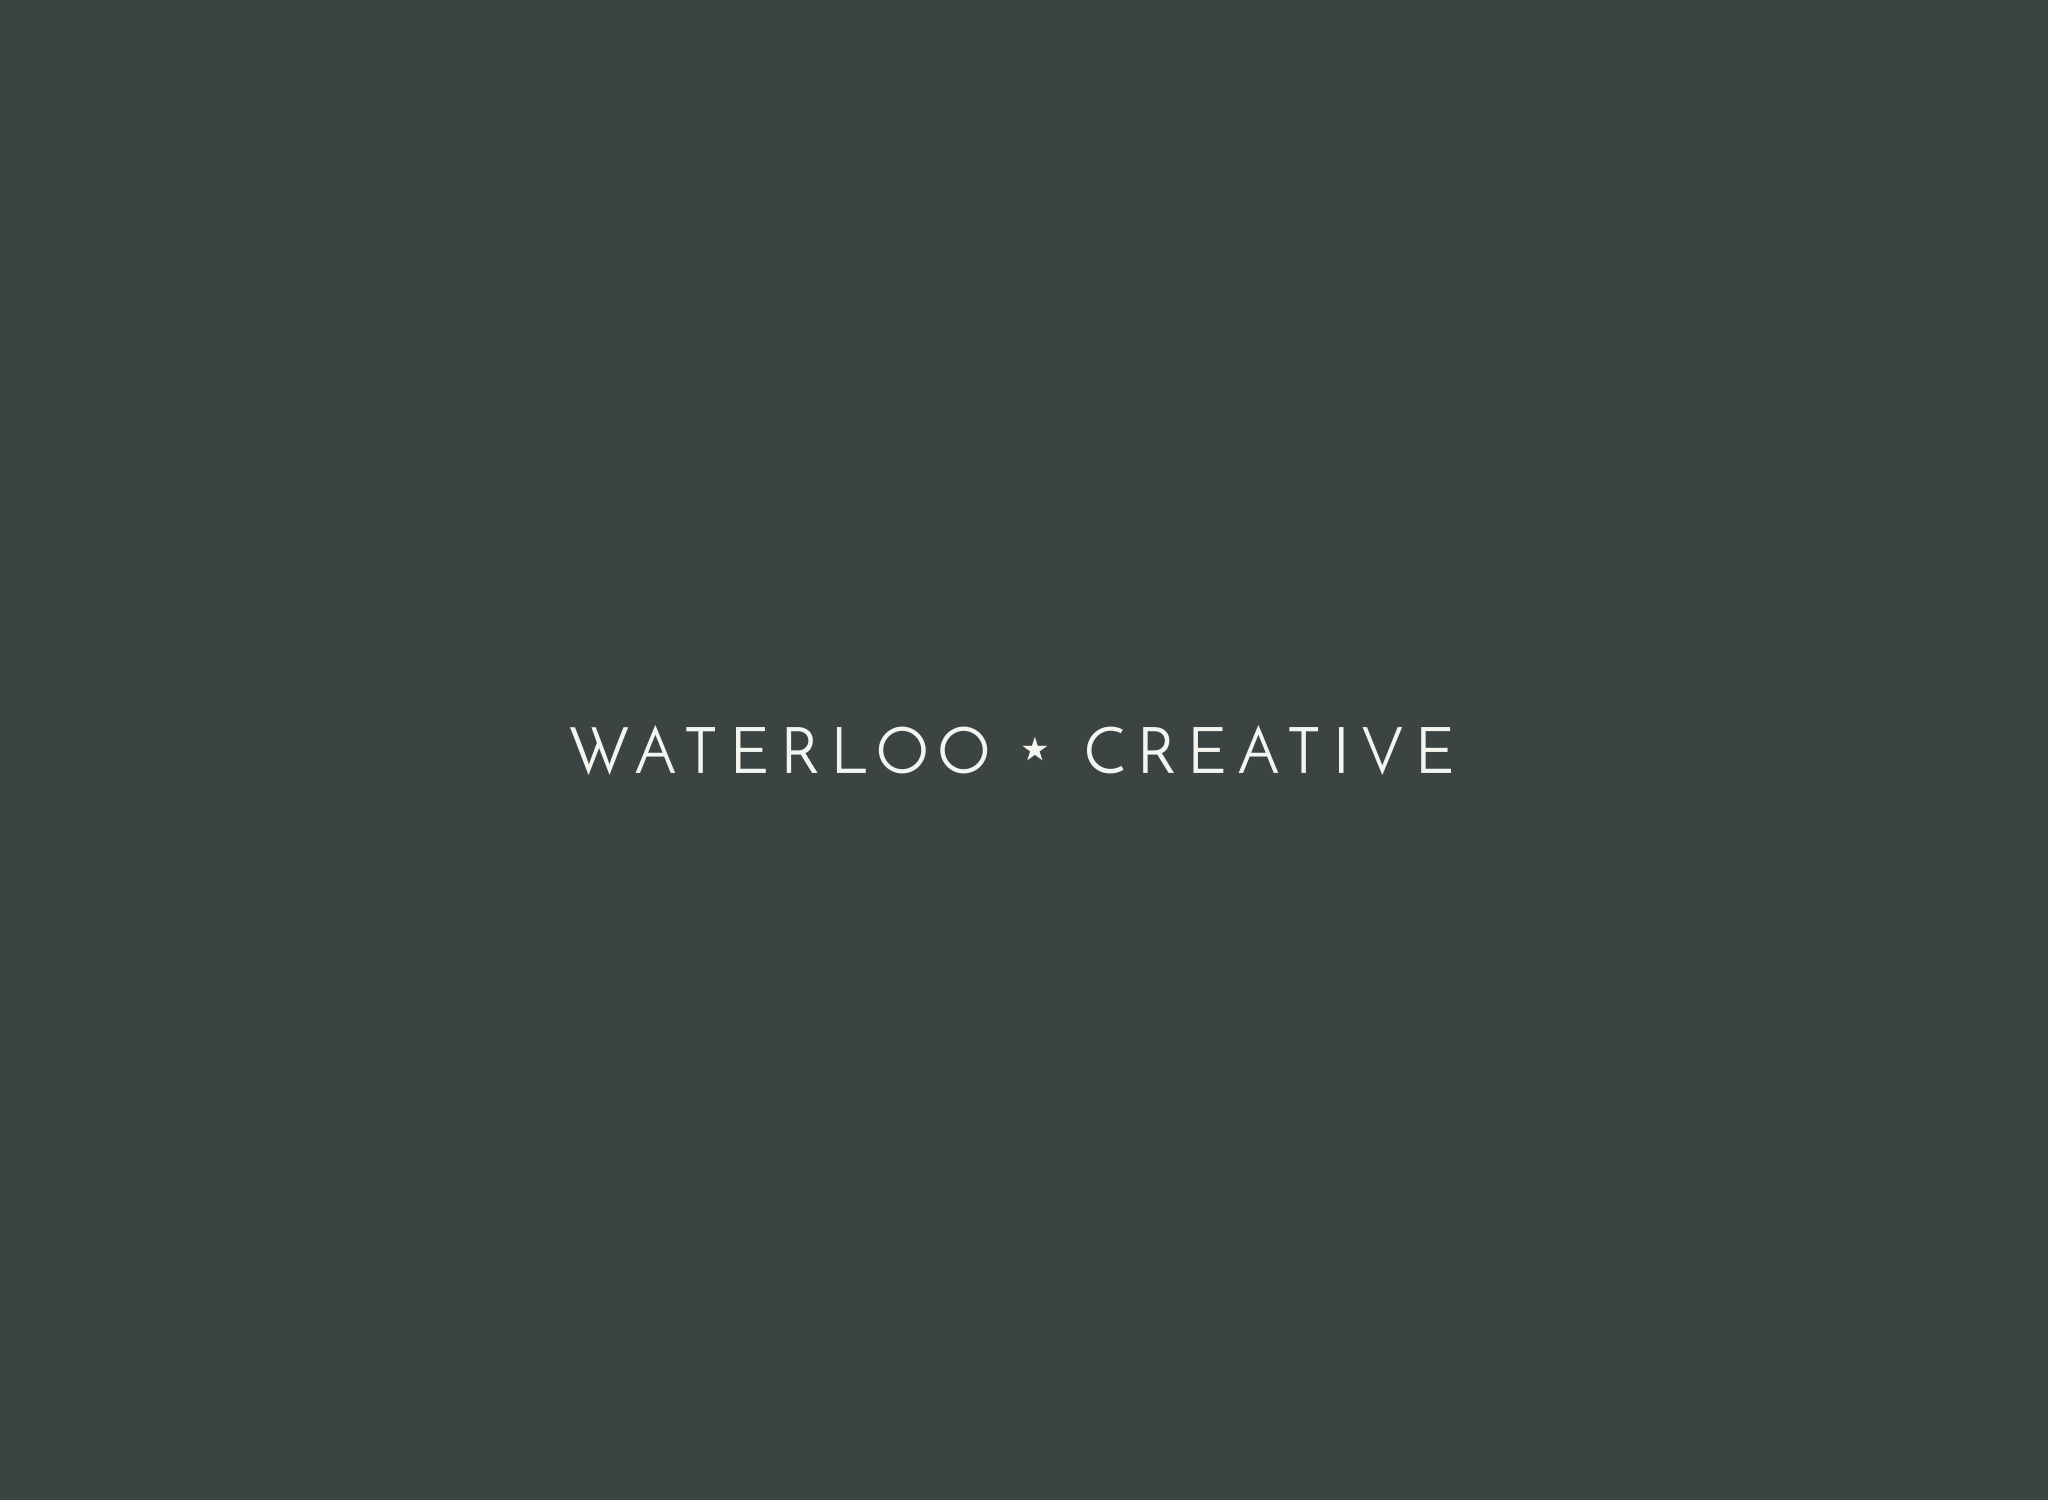 Waterloo Creative, Final